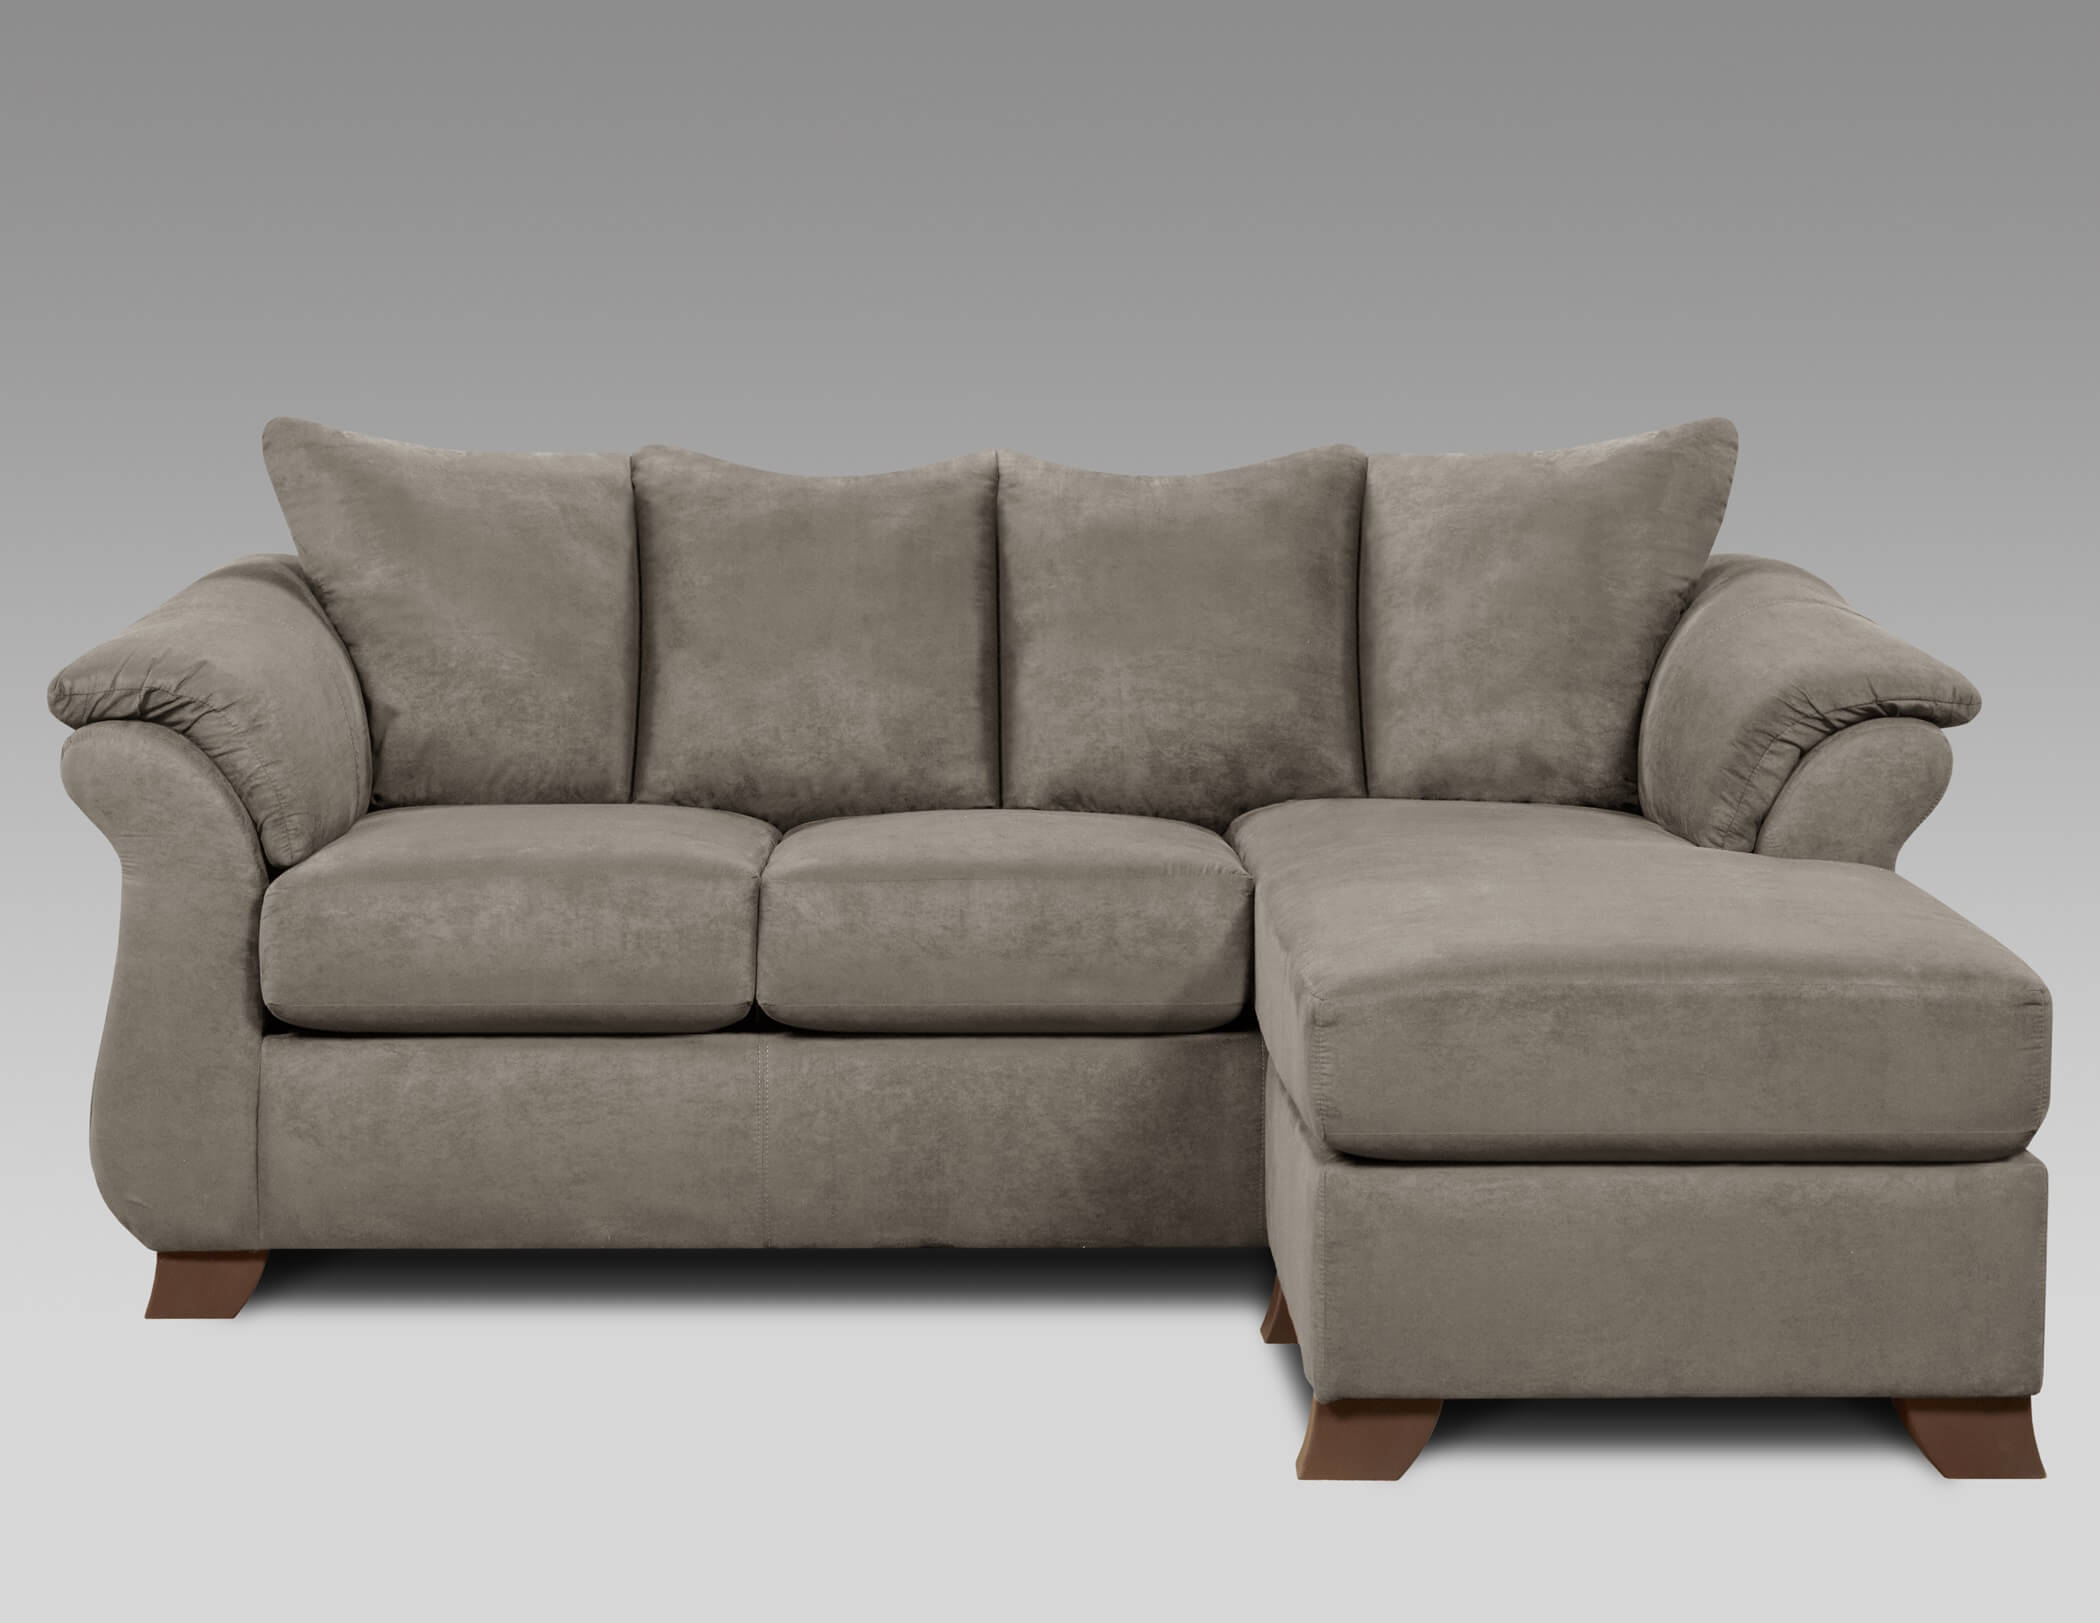 Sensations Grey Sofa Chaise Sectional Sofa Sets